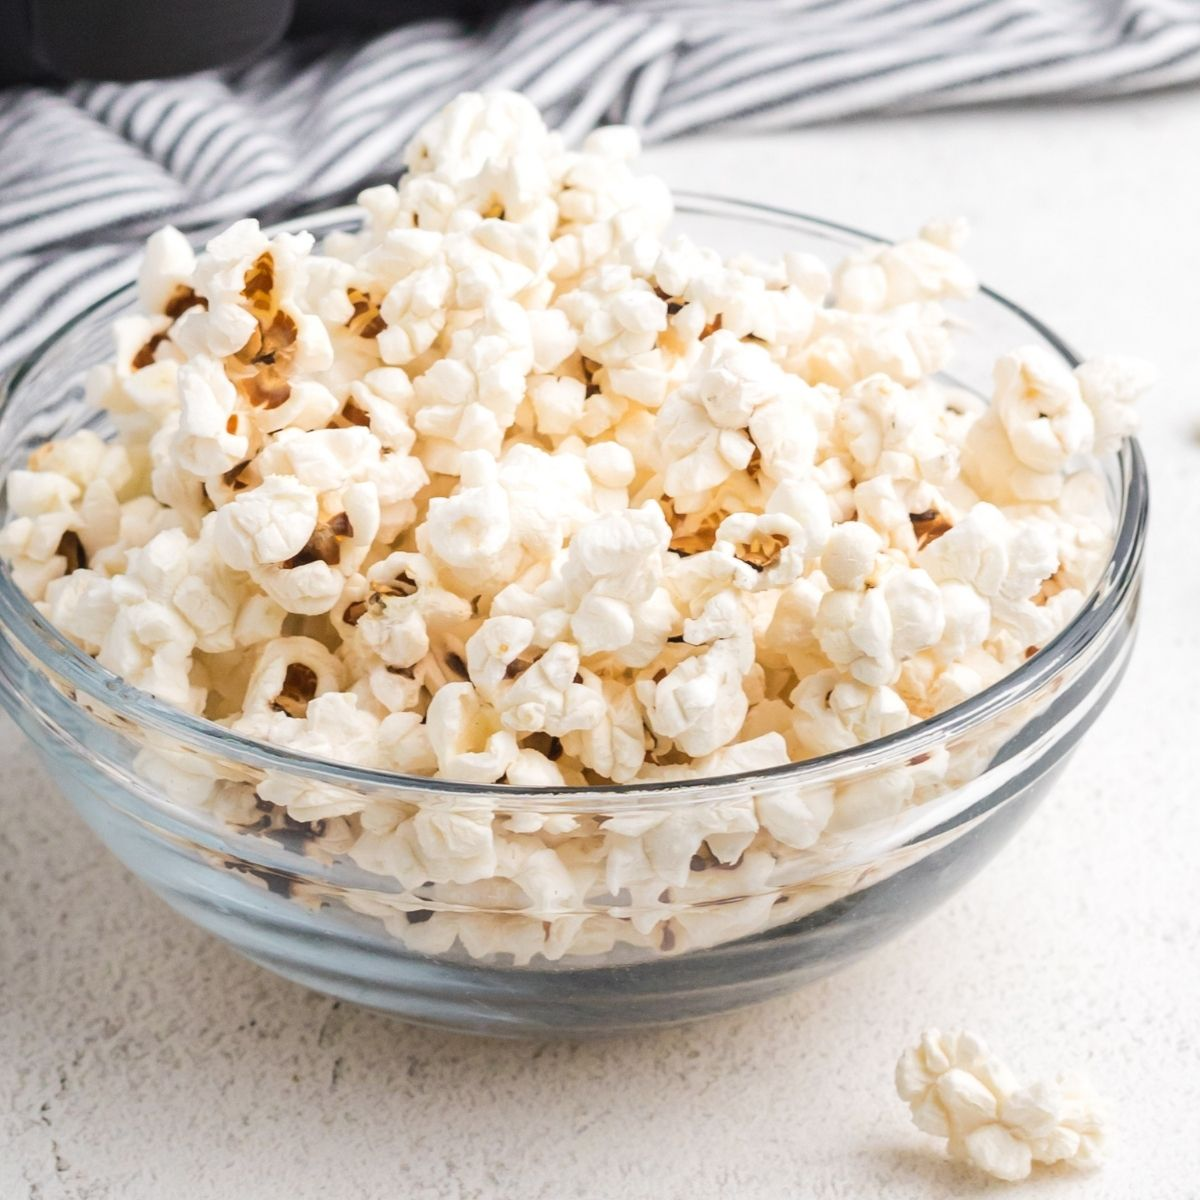 Popcorn in a clear bowl from an air fryer.